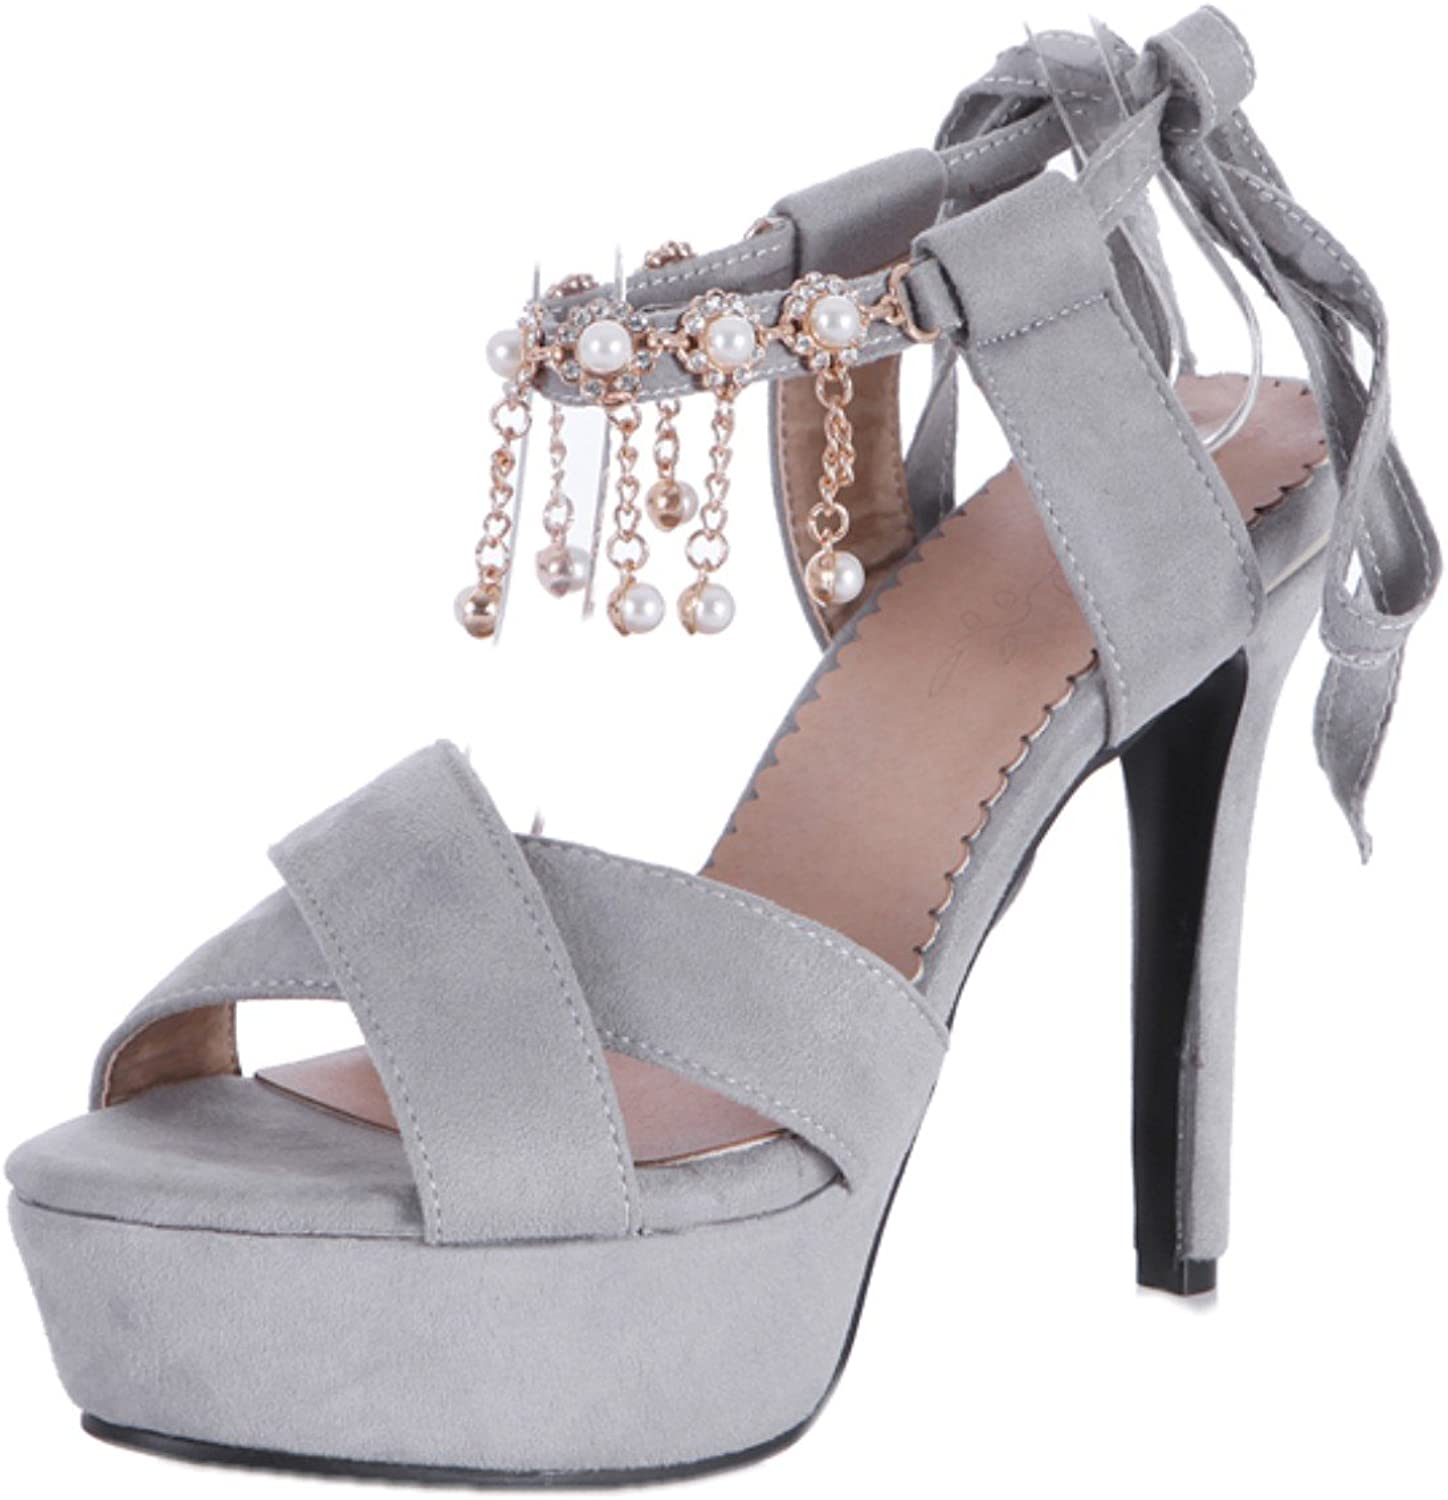 Rongzhi Womens Platform High Heels Stilettos Heeled Sandals Ankle Strap Lace Up Prom Party shoes Open Toe